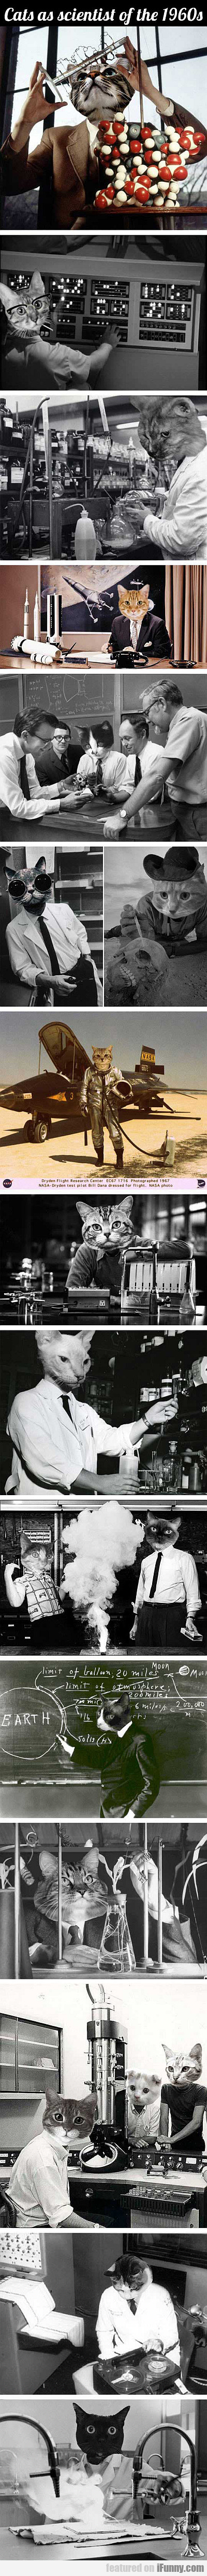 Cats As Scientists Of The 1960s (compilation)